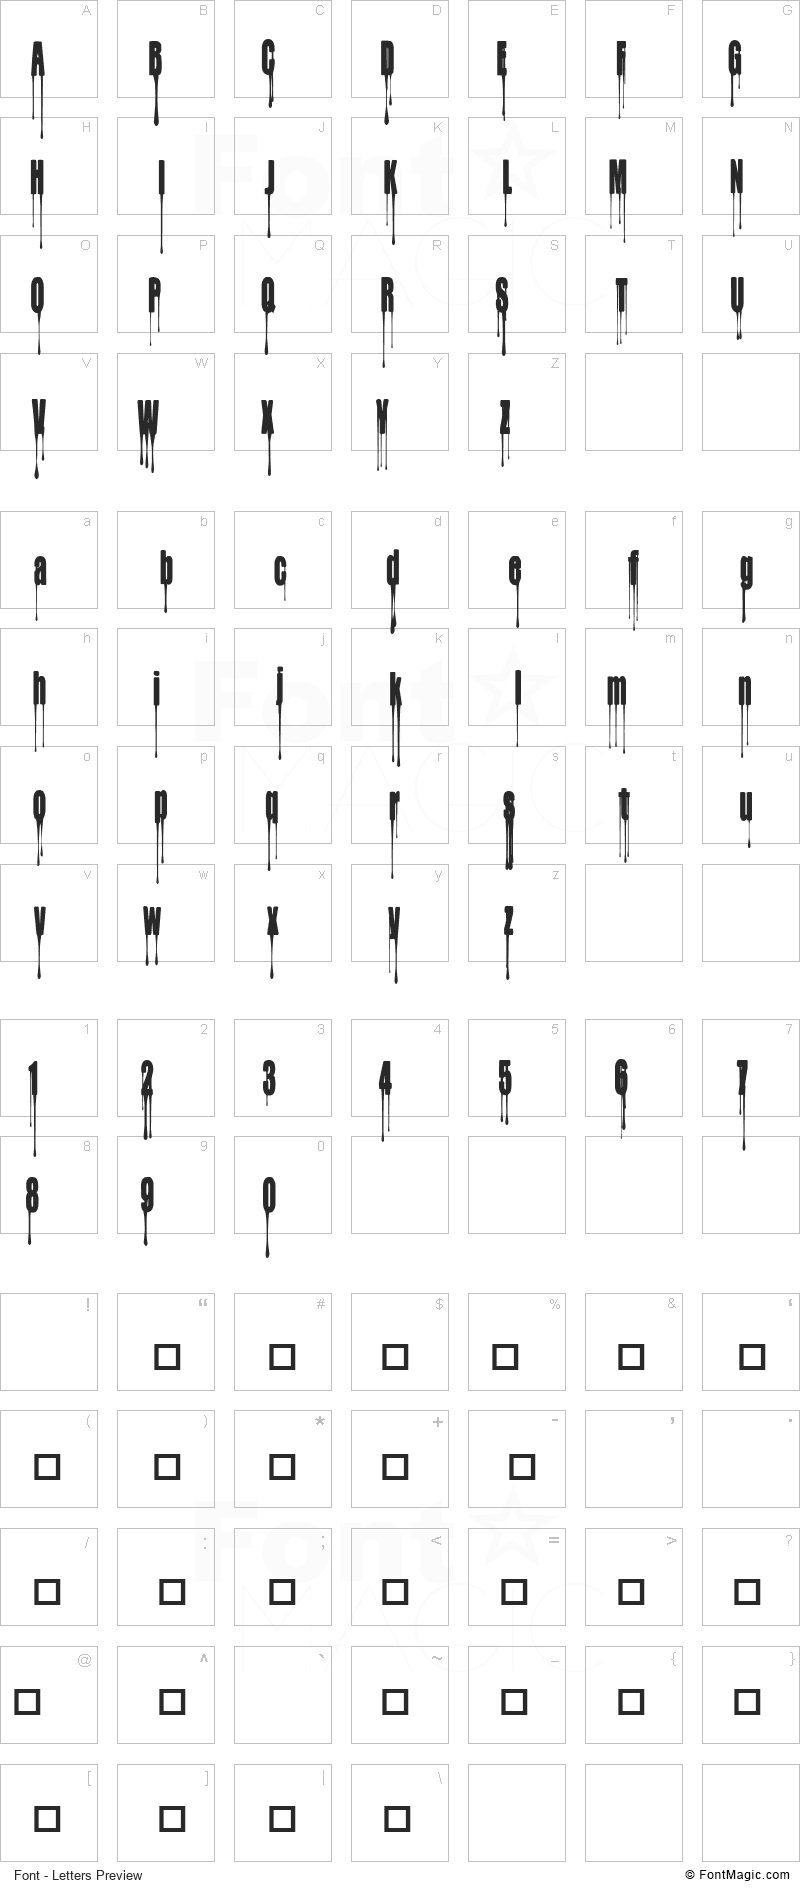 CF My Bloody Valentine Font - All Latters Preview Chart